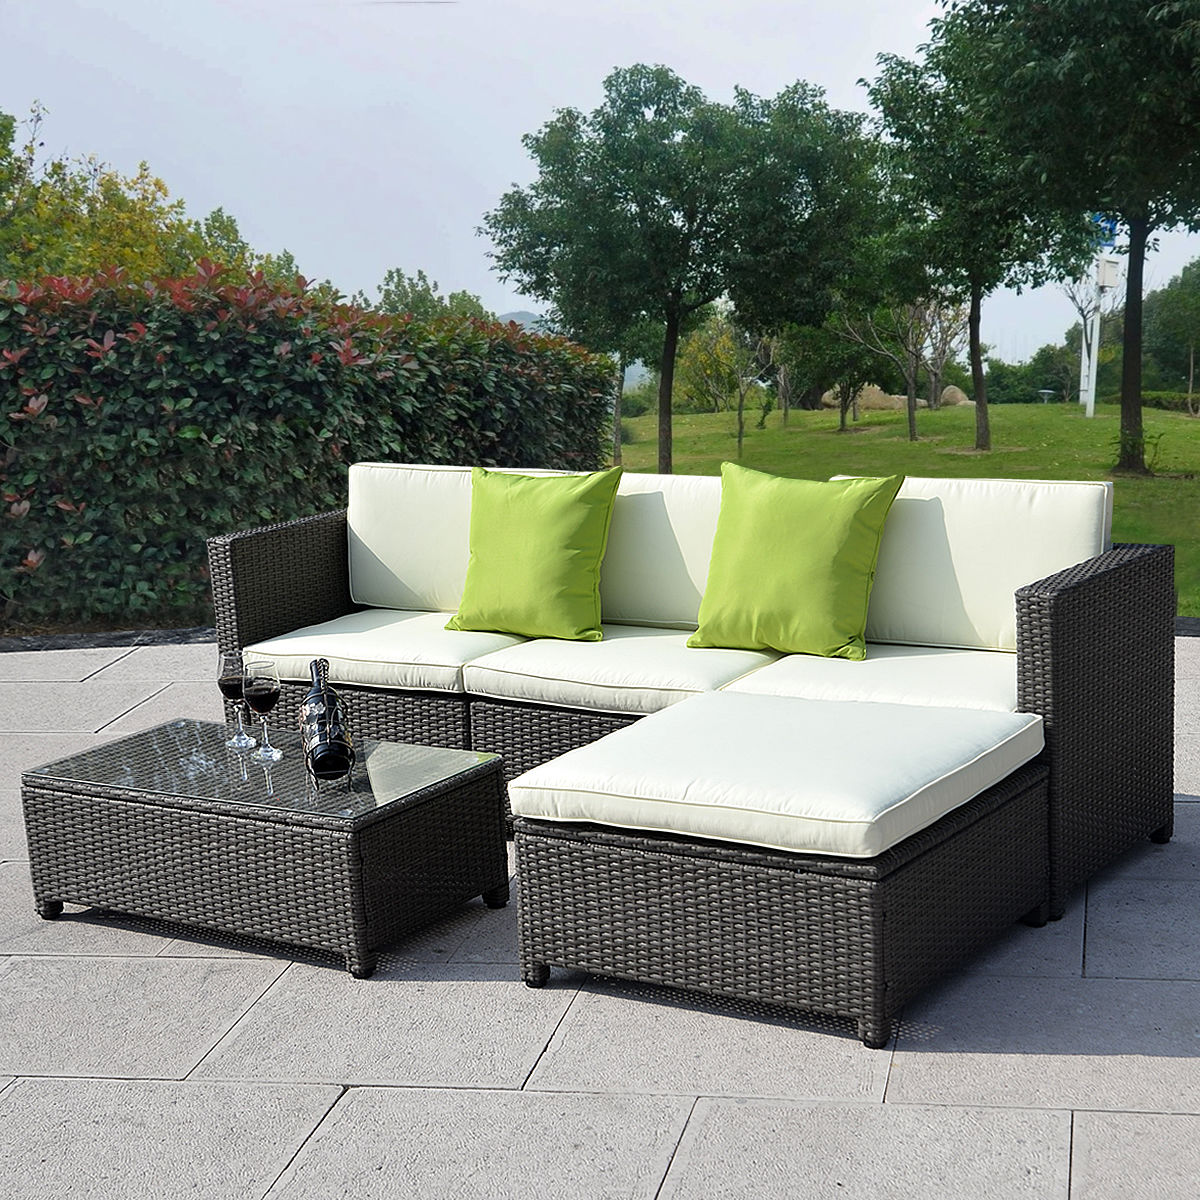 outdoor patio wicker sofa set 5pc pe rattan rh wholesaleeventtents com Modern Rattan Outdoor Furniture Modern Rattan Outdoor Furniture